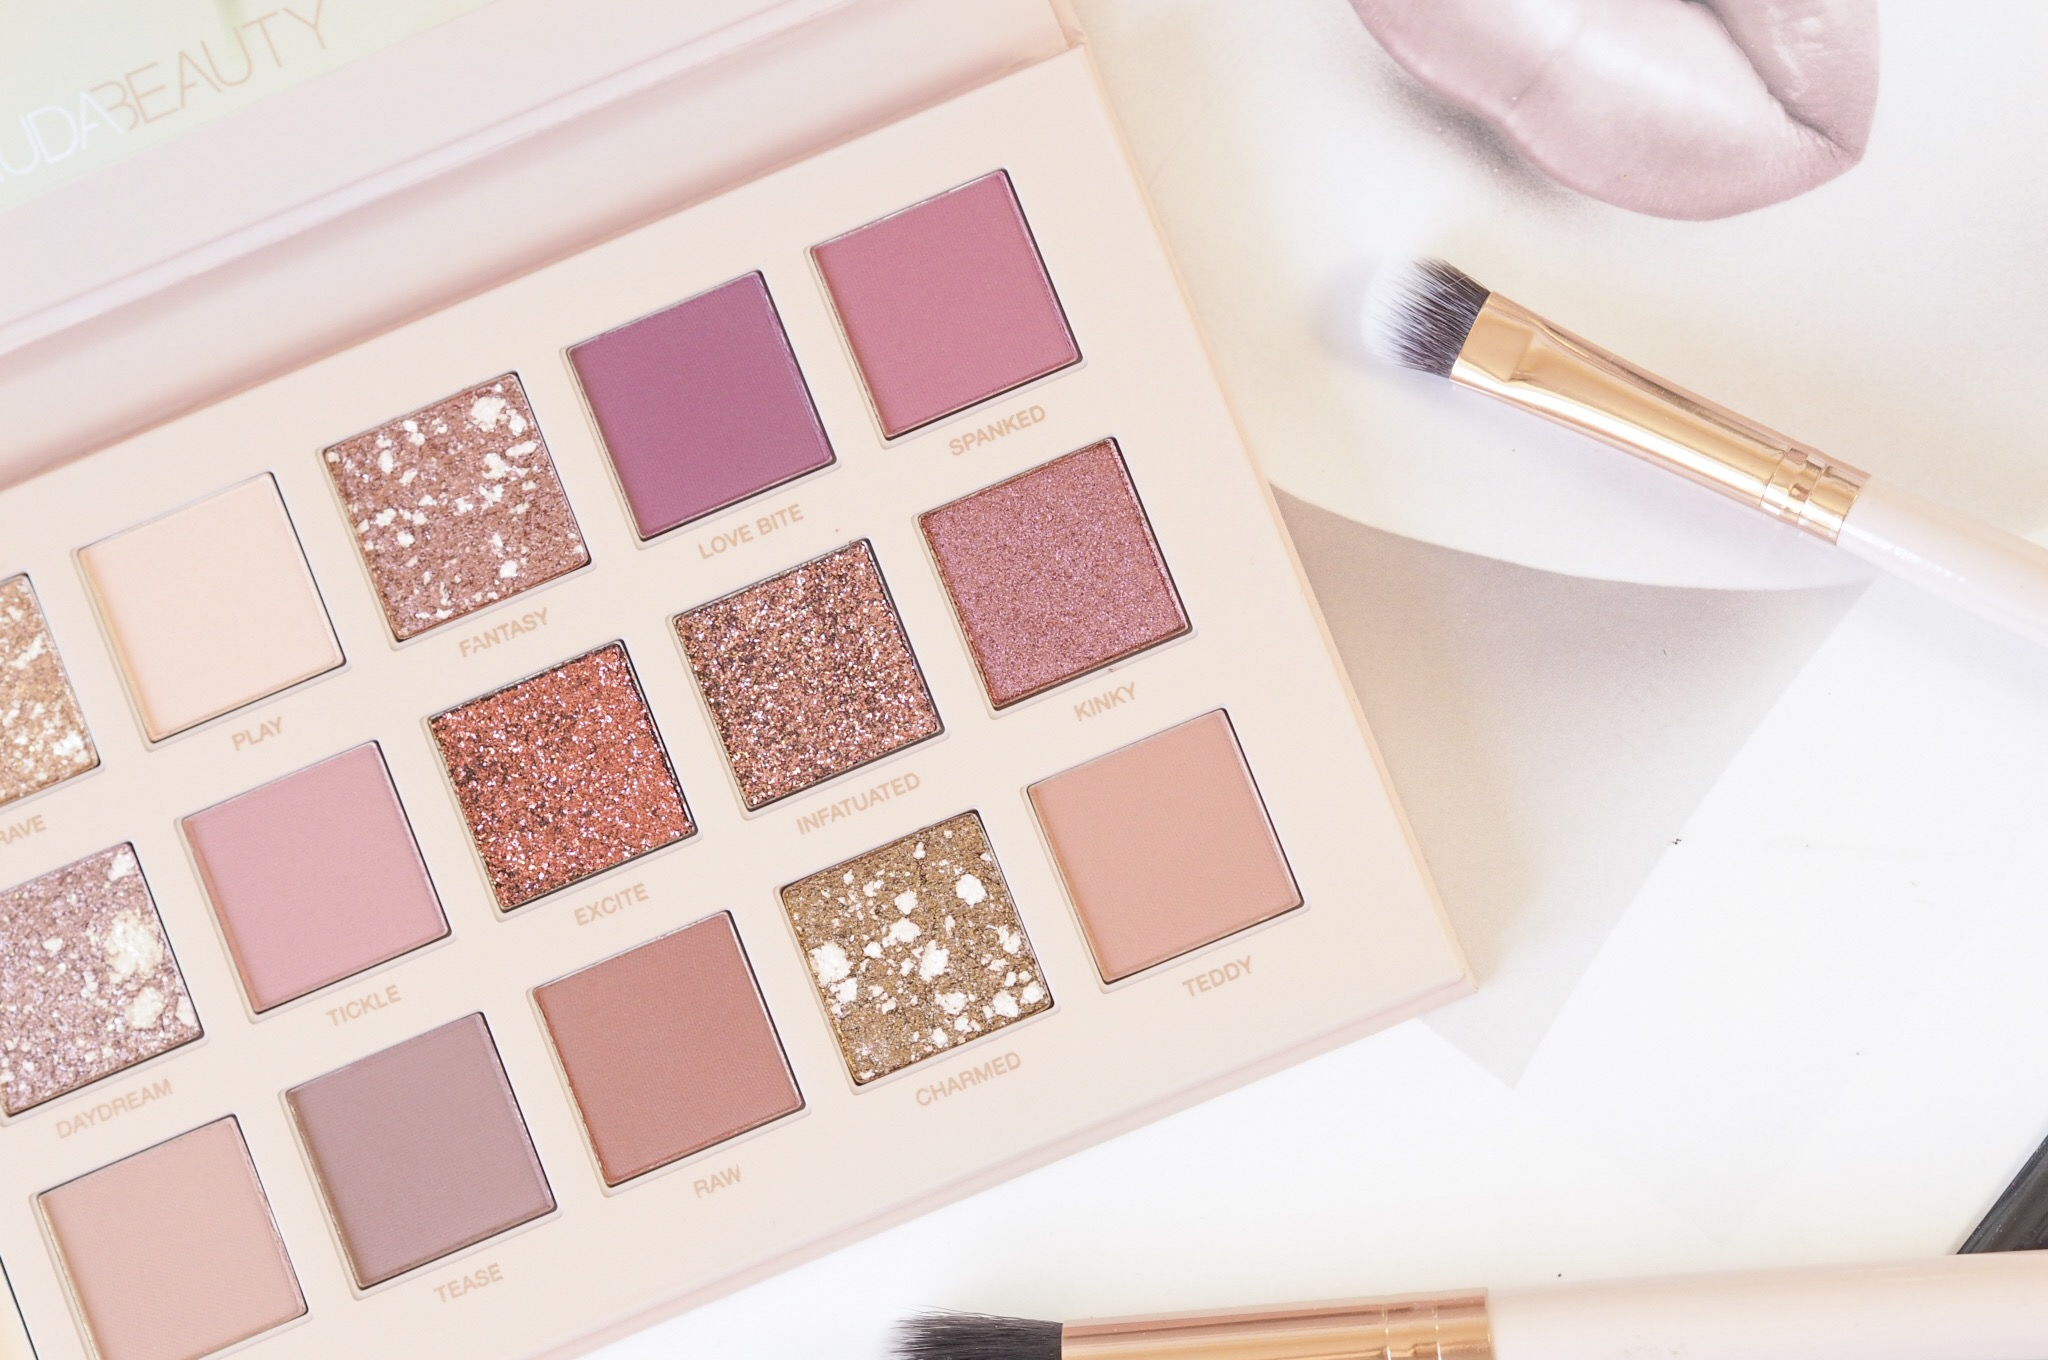 Huda Beauty New Nude Eyeshadow Review